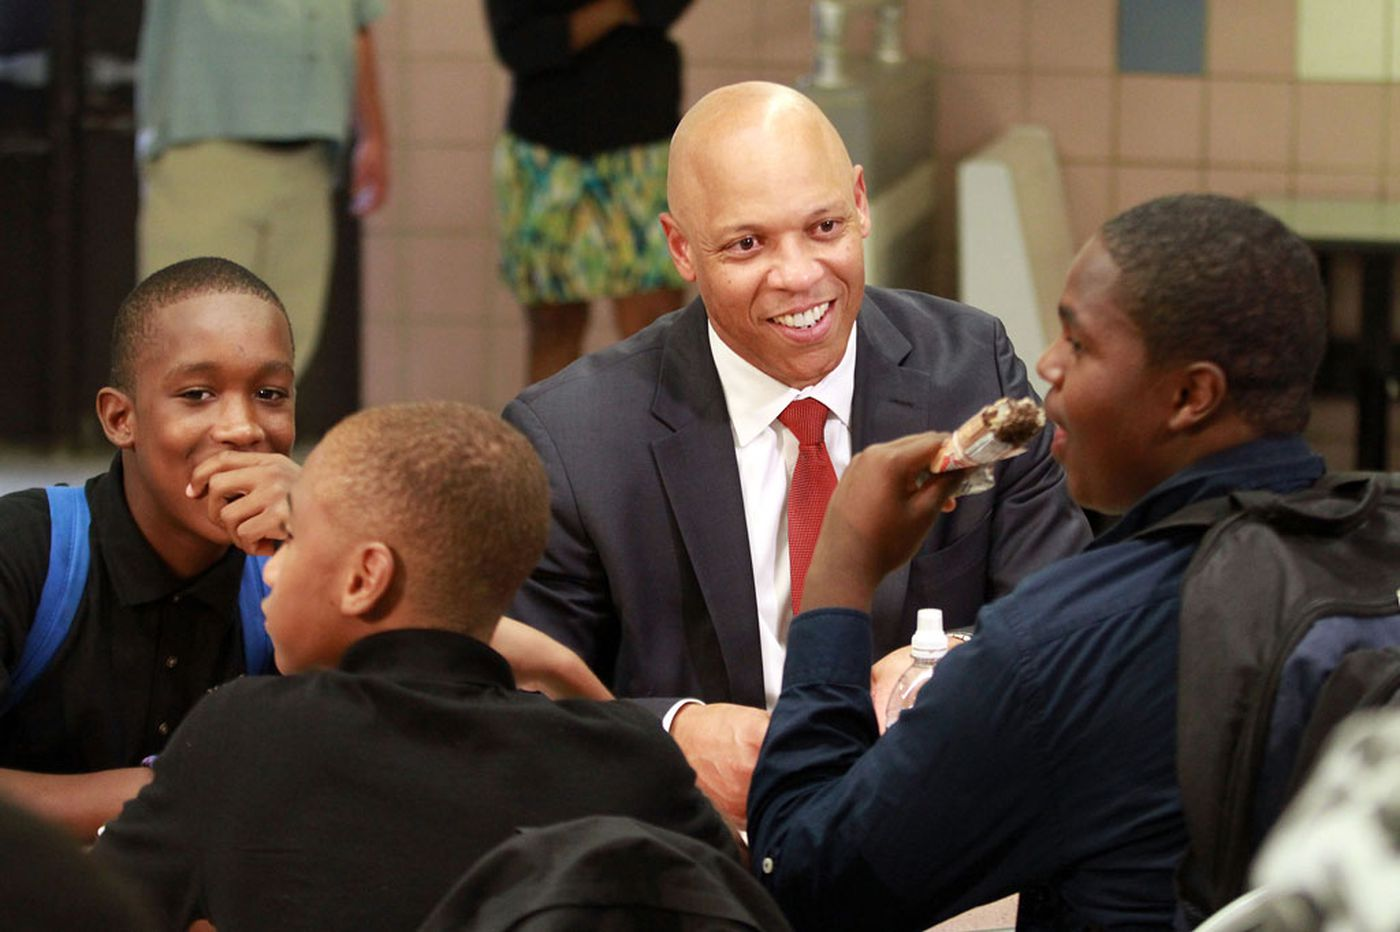 Philly school progress report shows improvement, but more work lies ahead | Opinion